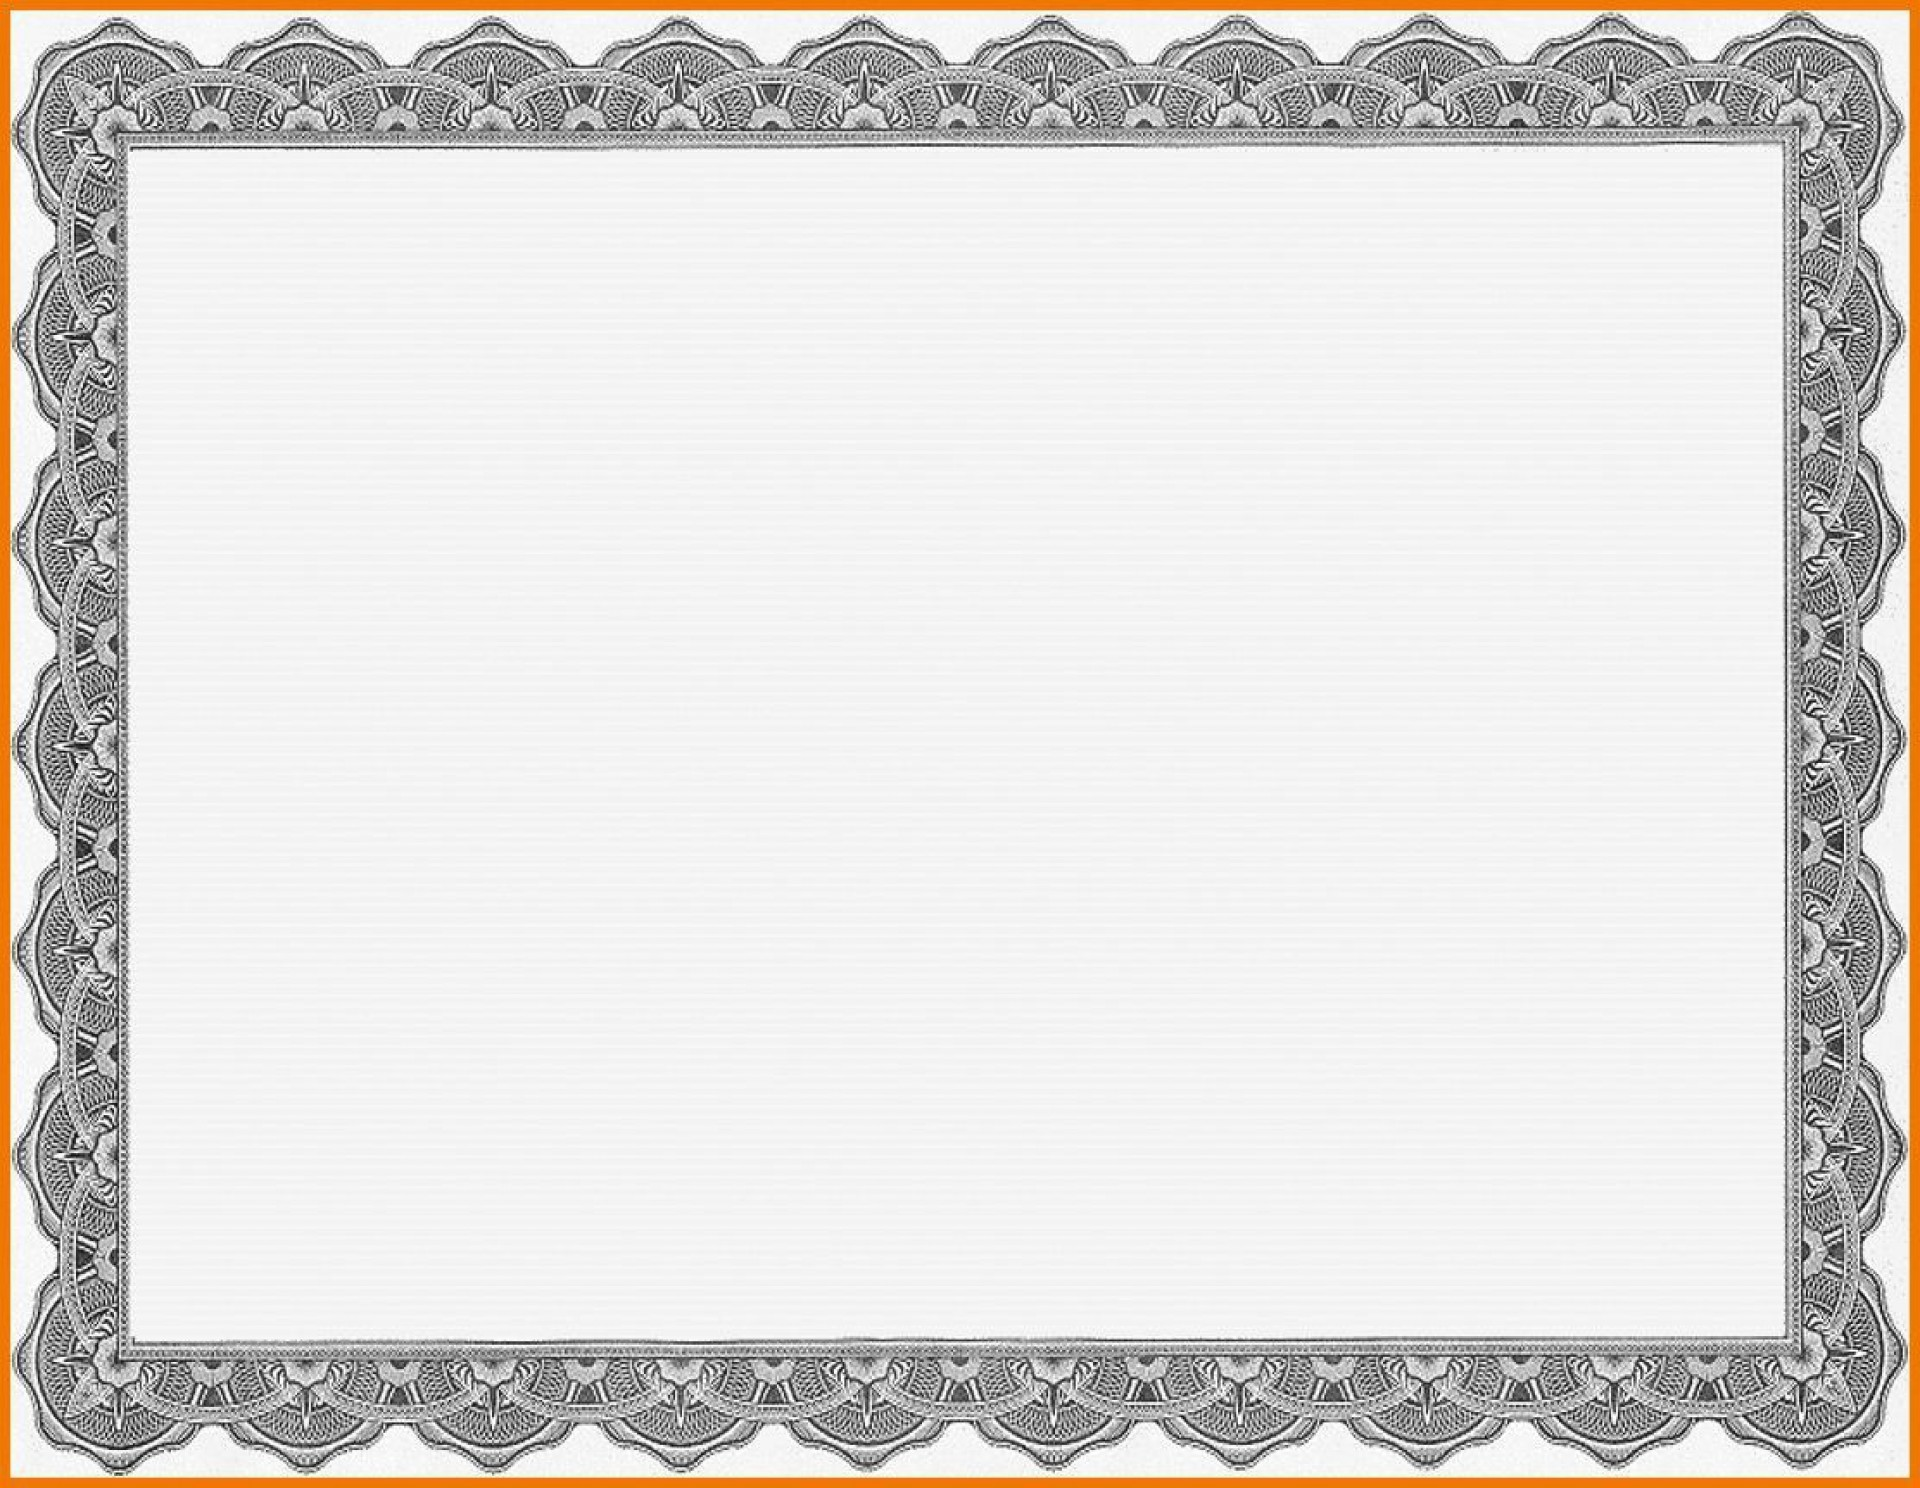 008 Top Free Printable Blank Certificate Template Picture  Templates Gift Of Achievement1920